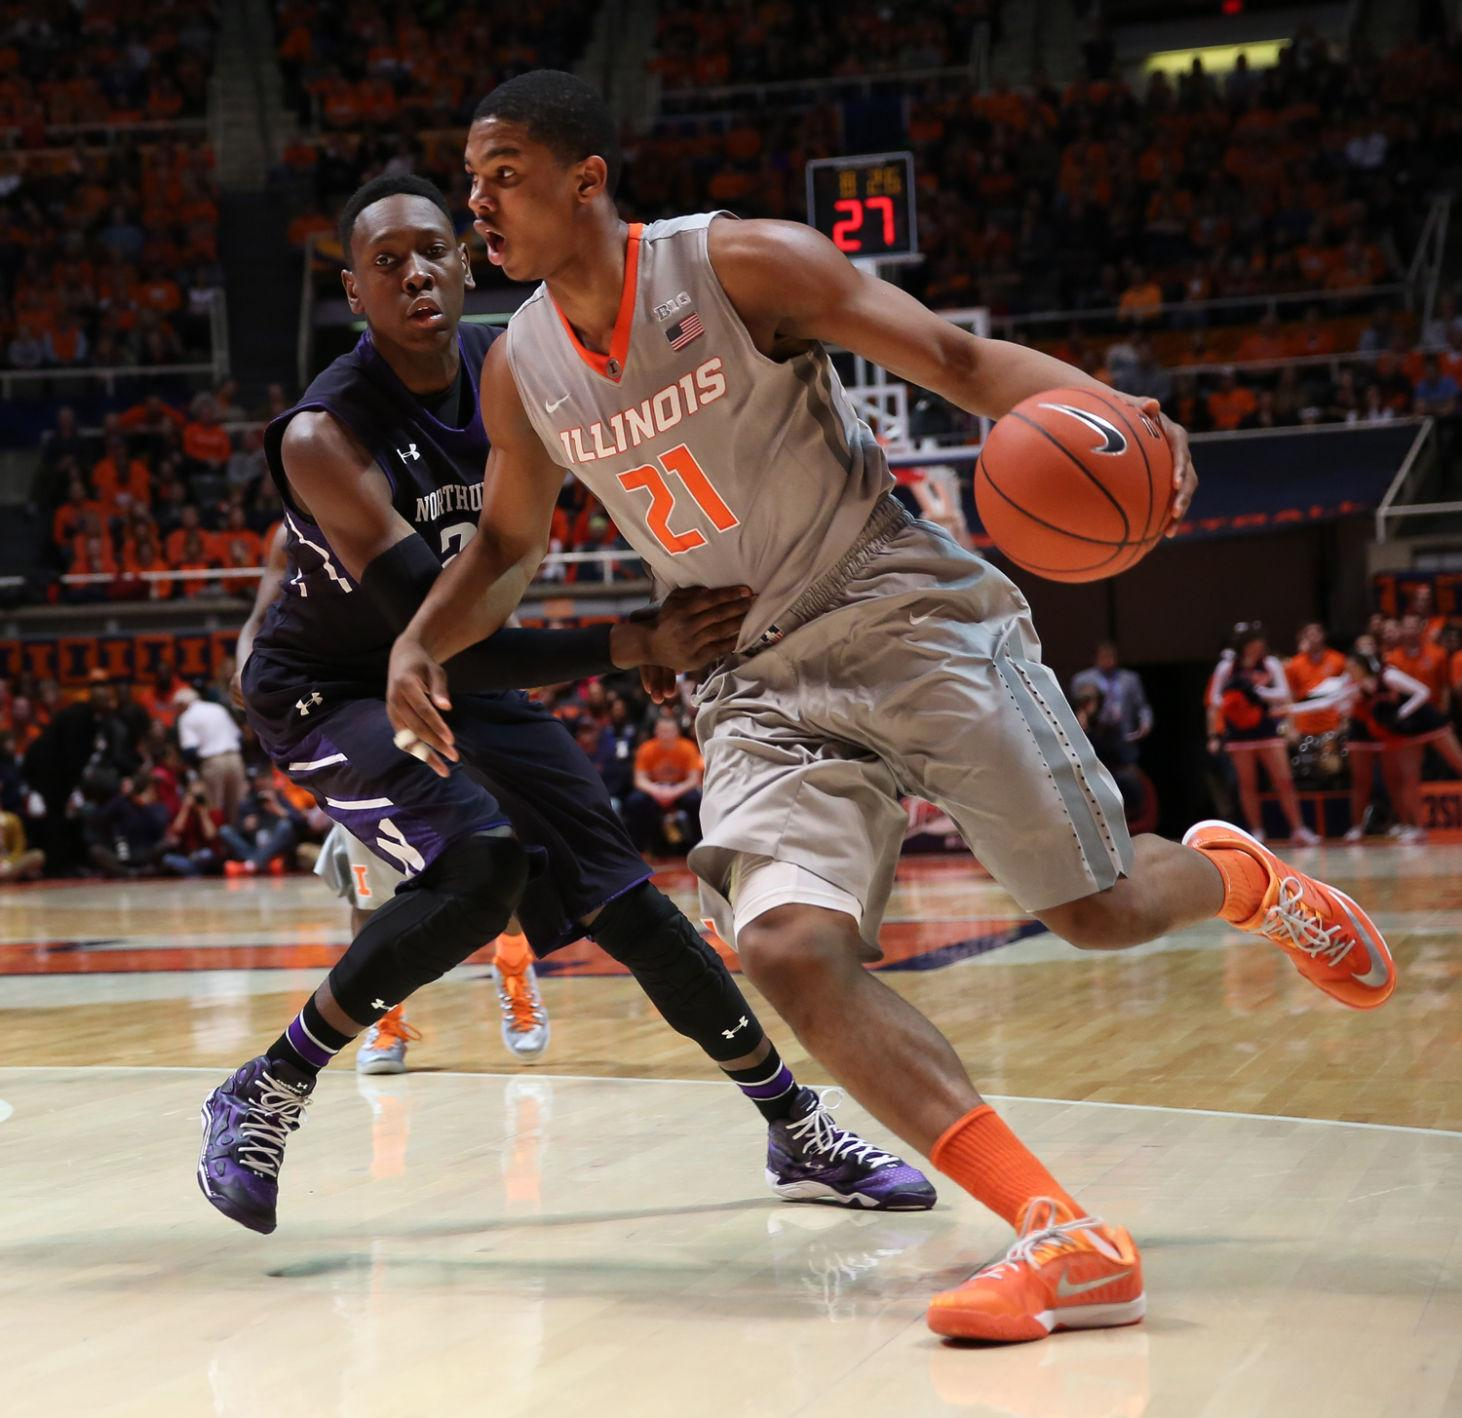 Illinois' Malcolm Hill (21) drives to the basket during the game against Northwestern at State Farm Center, on Saturday, Feb. 28, 2015. The Illini won 86-60.